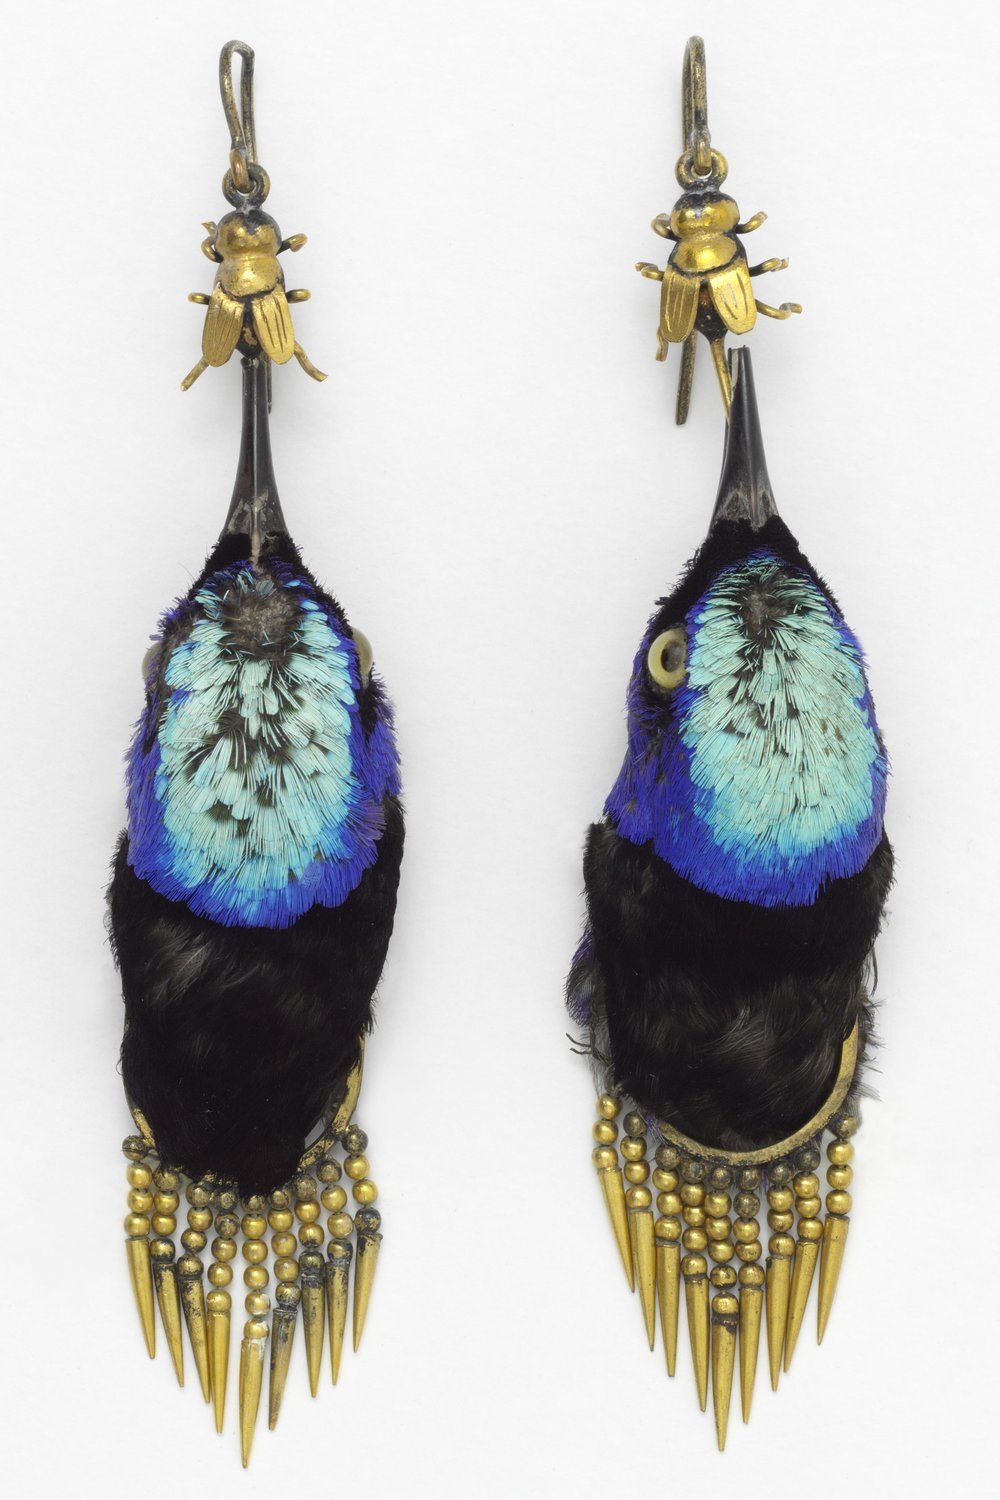 Earrings - Earrings made from heads of red legged honeycreeper birds.